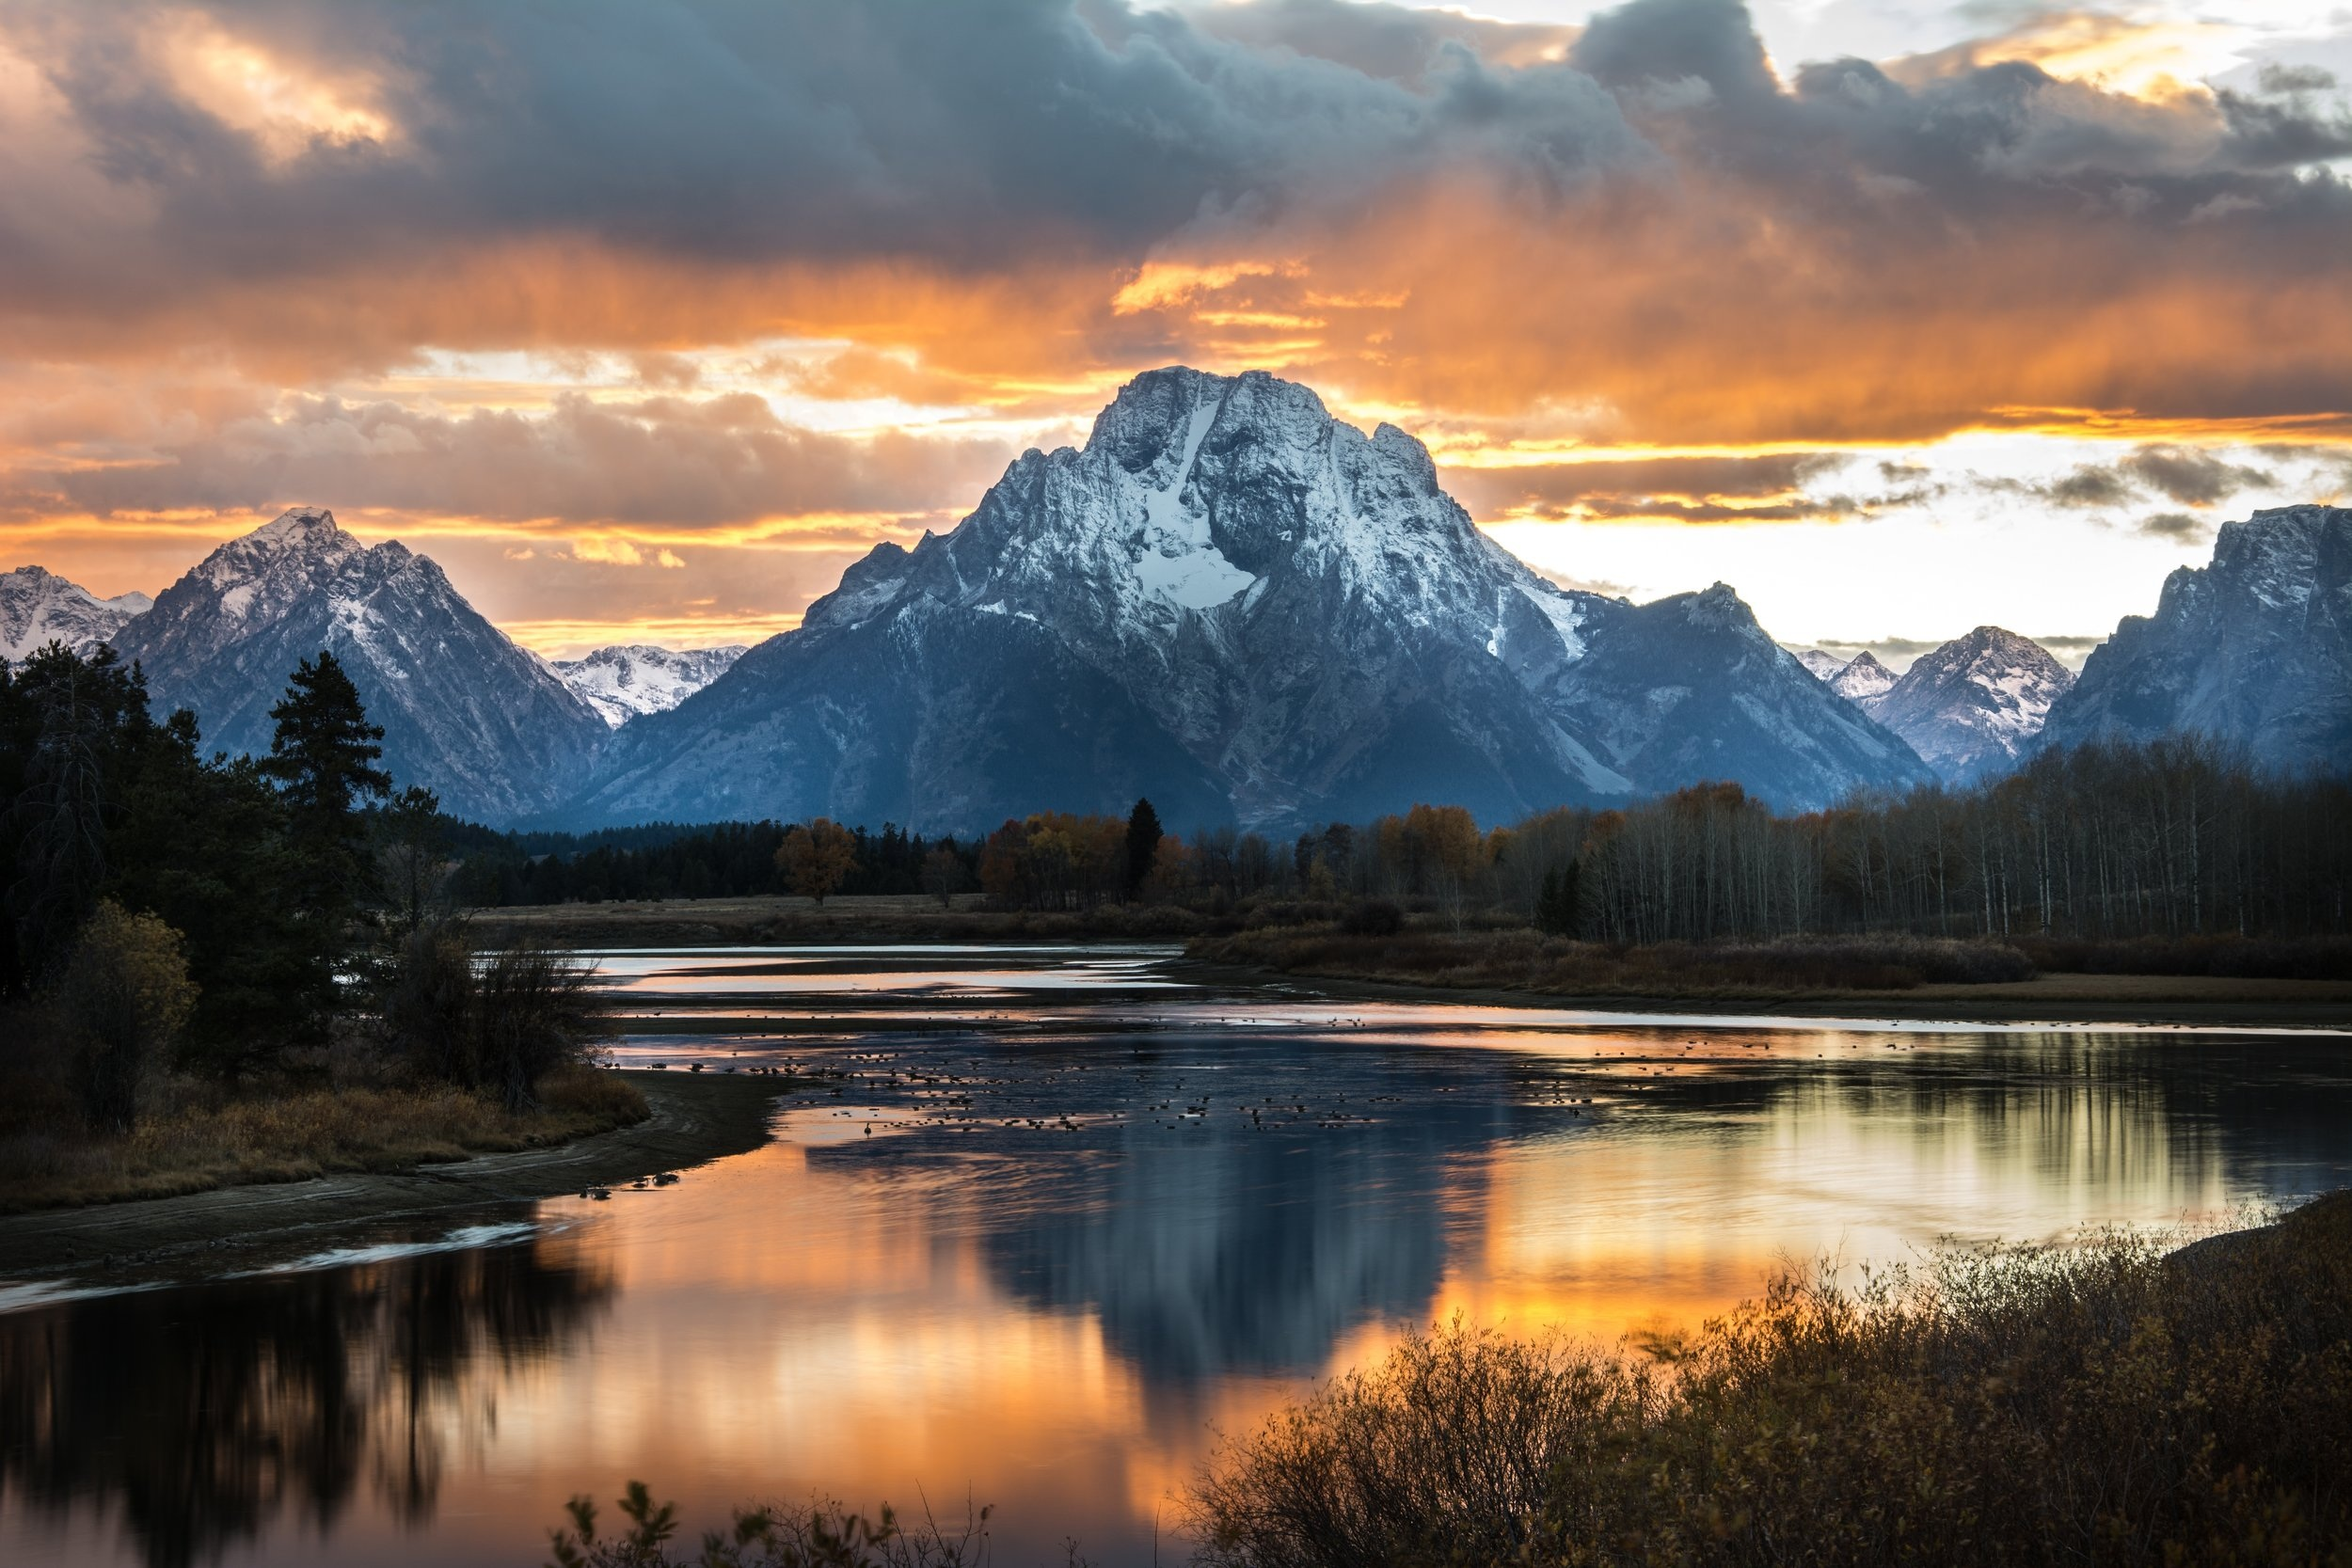 Sunset in Yellowstone National Park - Private Sunrise or sunset wildlife tours in Grand Teton National Park - Wyoming Guide Co